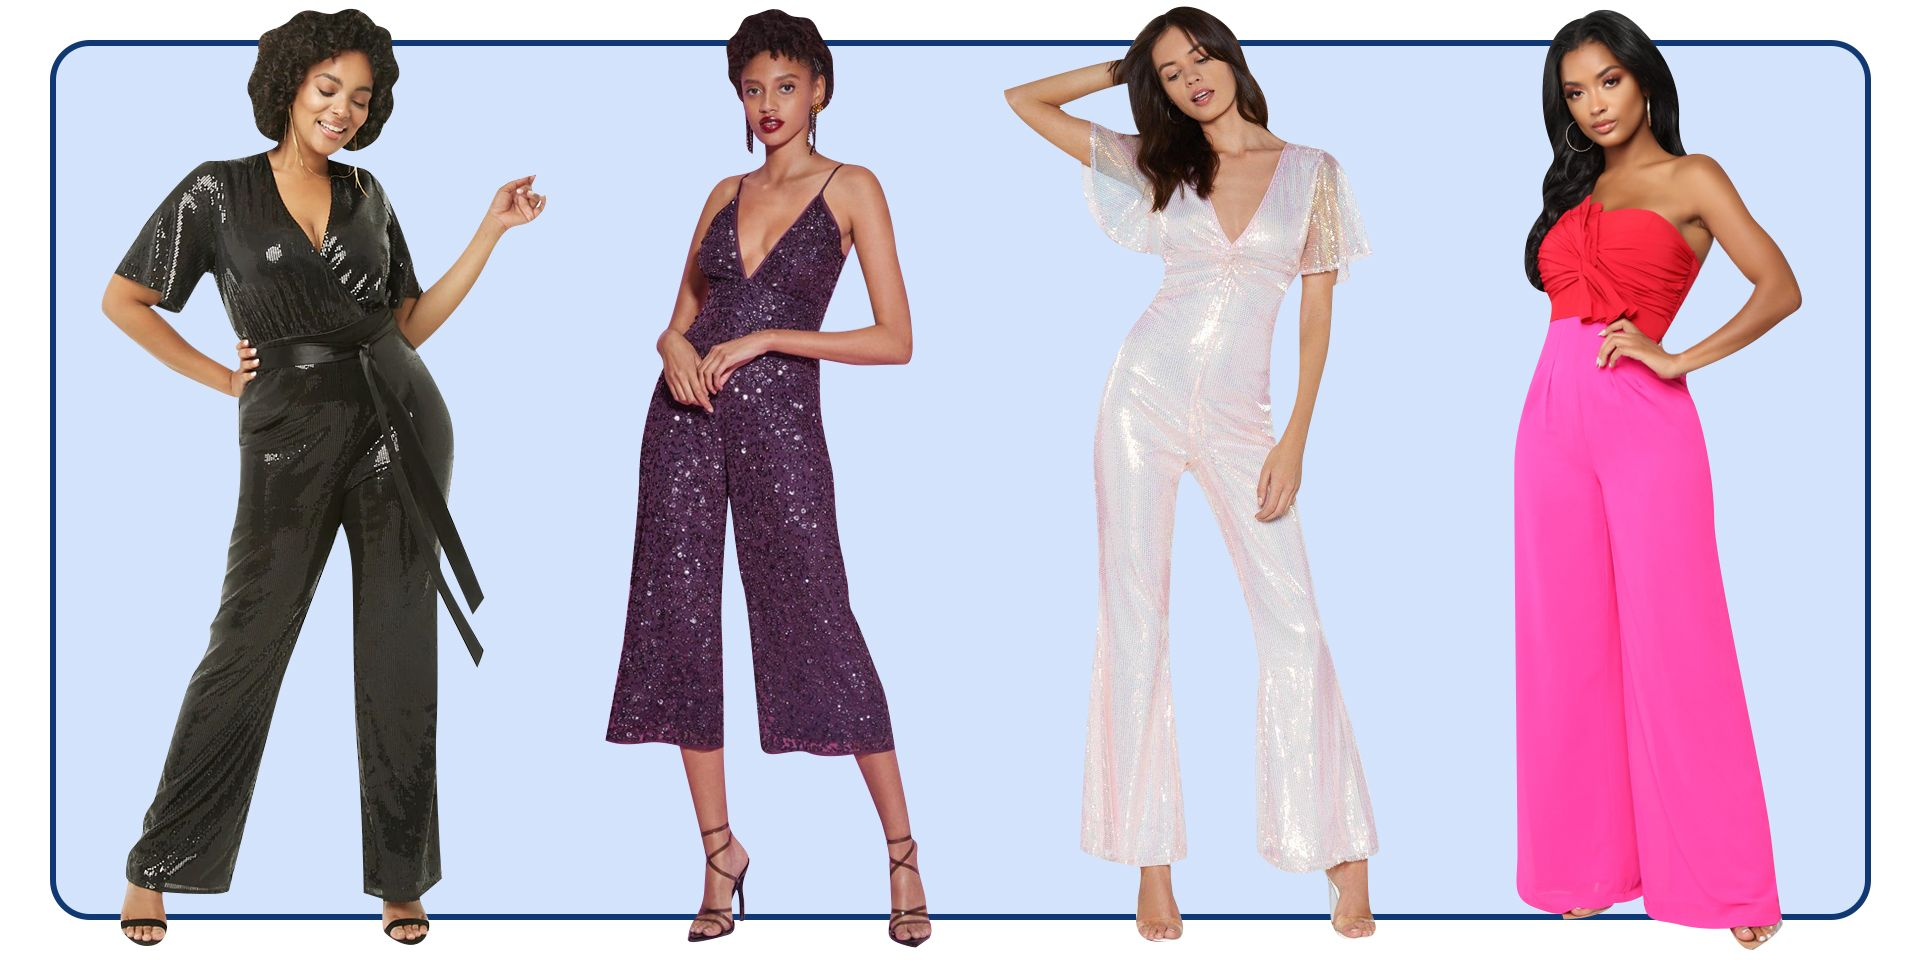 a74535ad0e 17 Best Jumpsuits for Prom - How to Wear a Cute Romper to Prom 2019